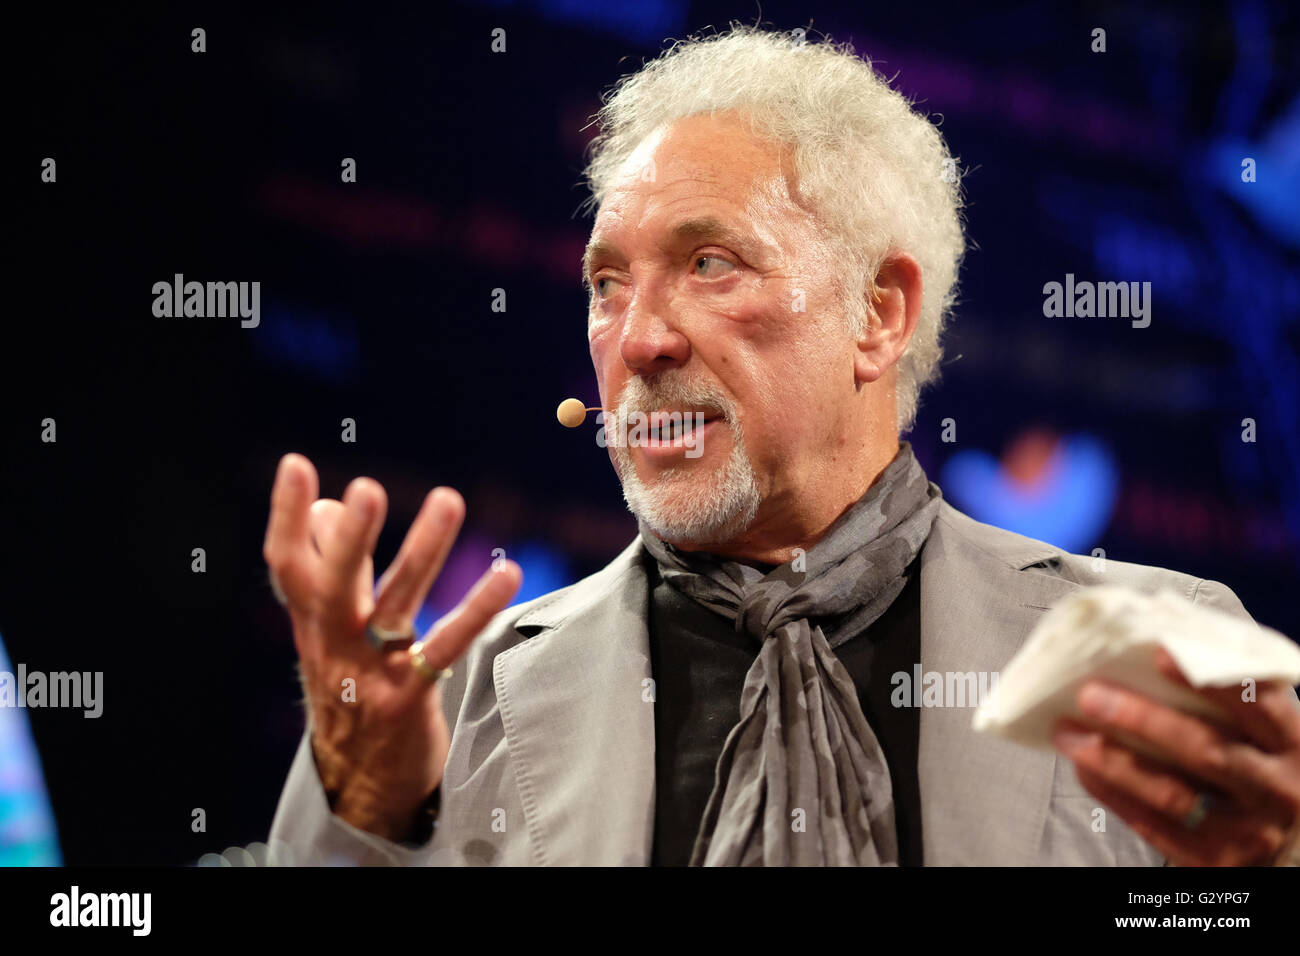 Hay Festival, Wales, UK - Sunday 5th June 2016 -  Tom Jones on stage at the Hay Festival before a sell out audience - Stock Image